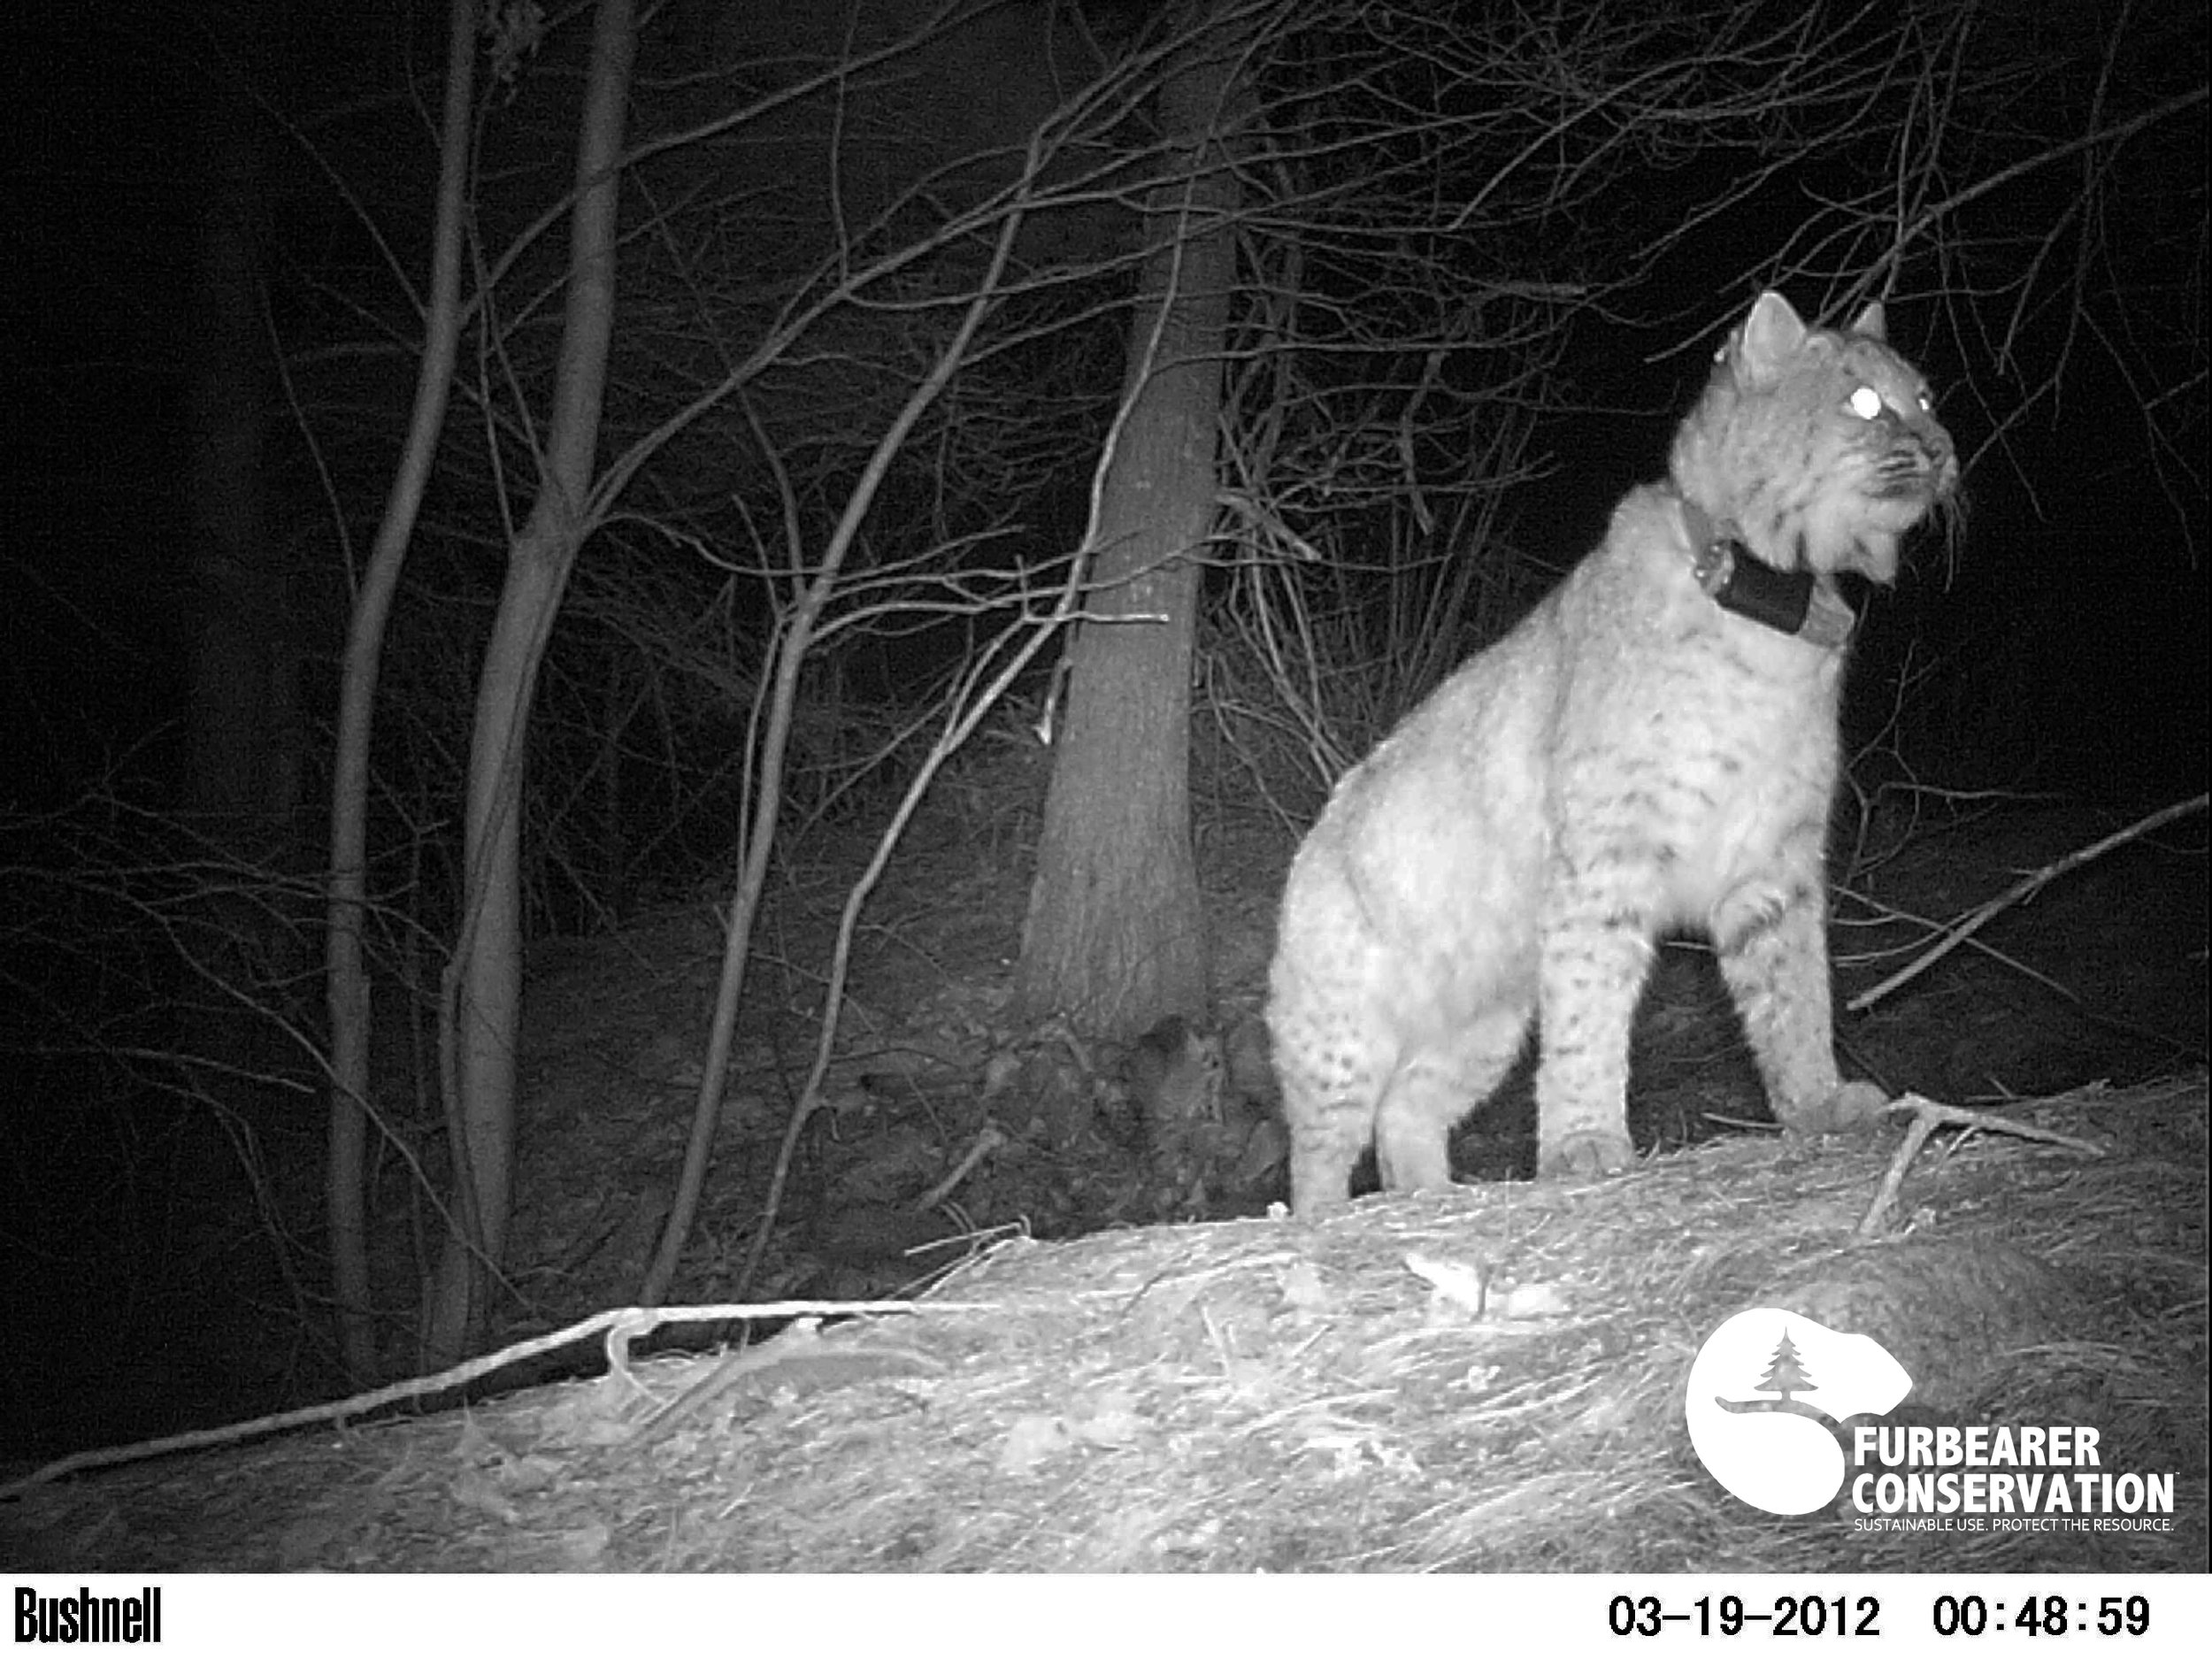 A radio-collared bobcat is captured investigating a deer carcass during the UNH Bobcat study in New Hampshire (Photo | Furbearer Conservation)